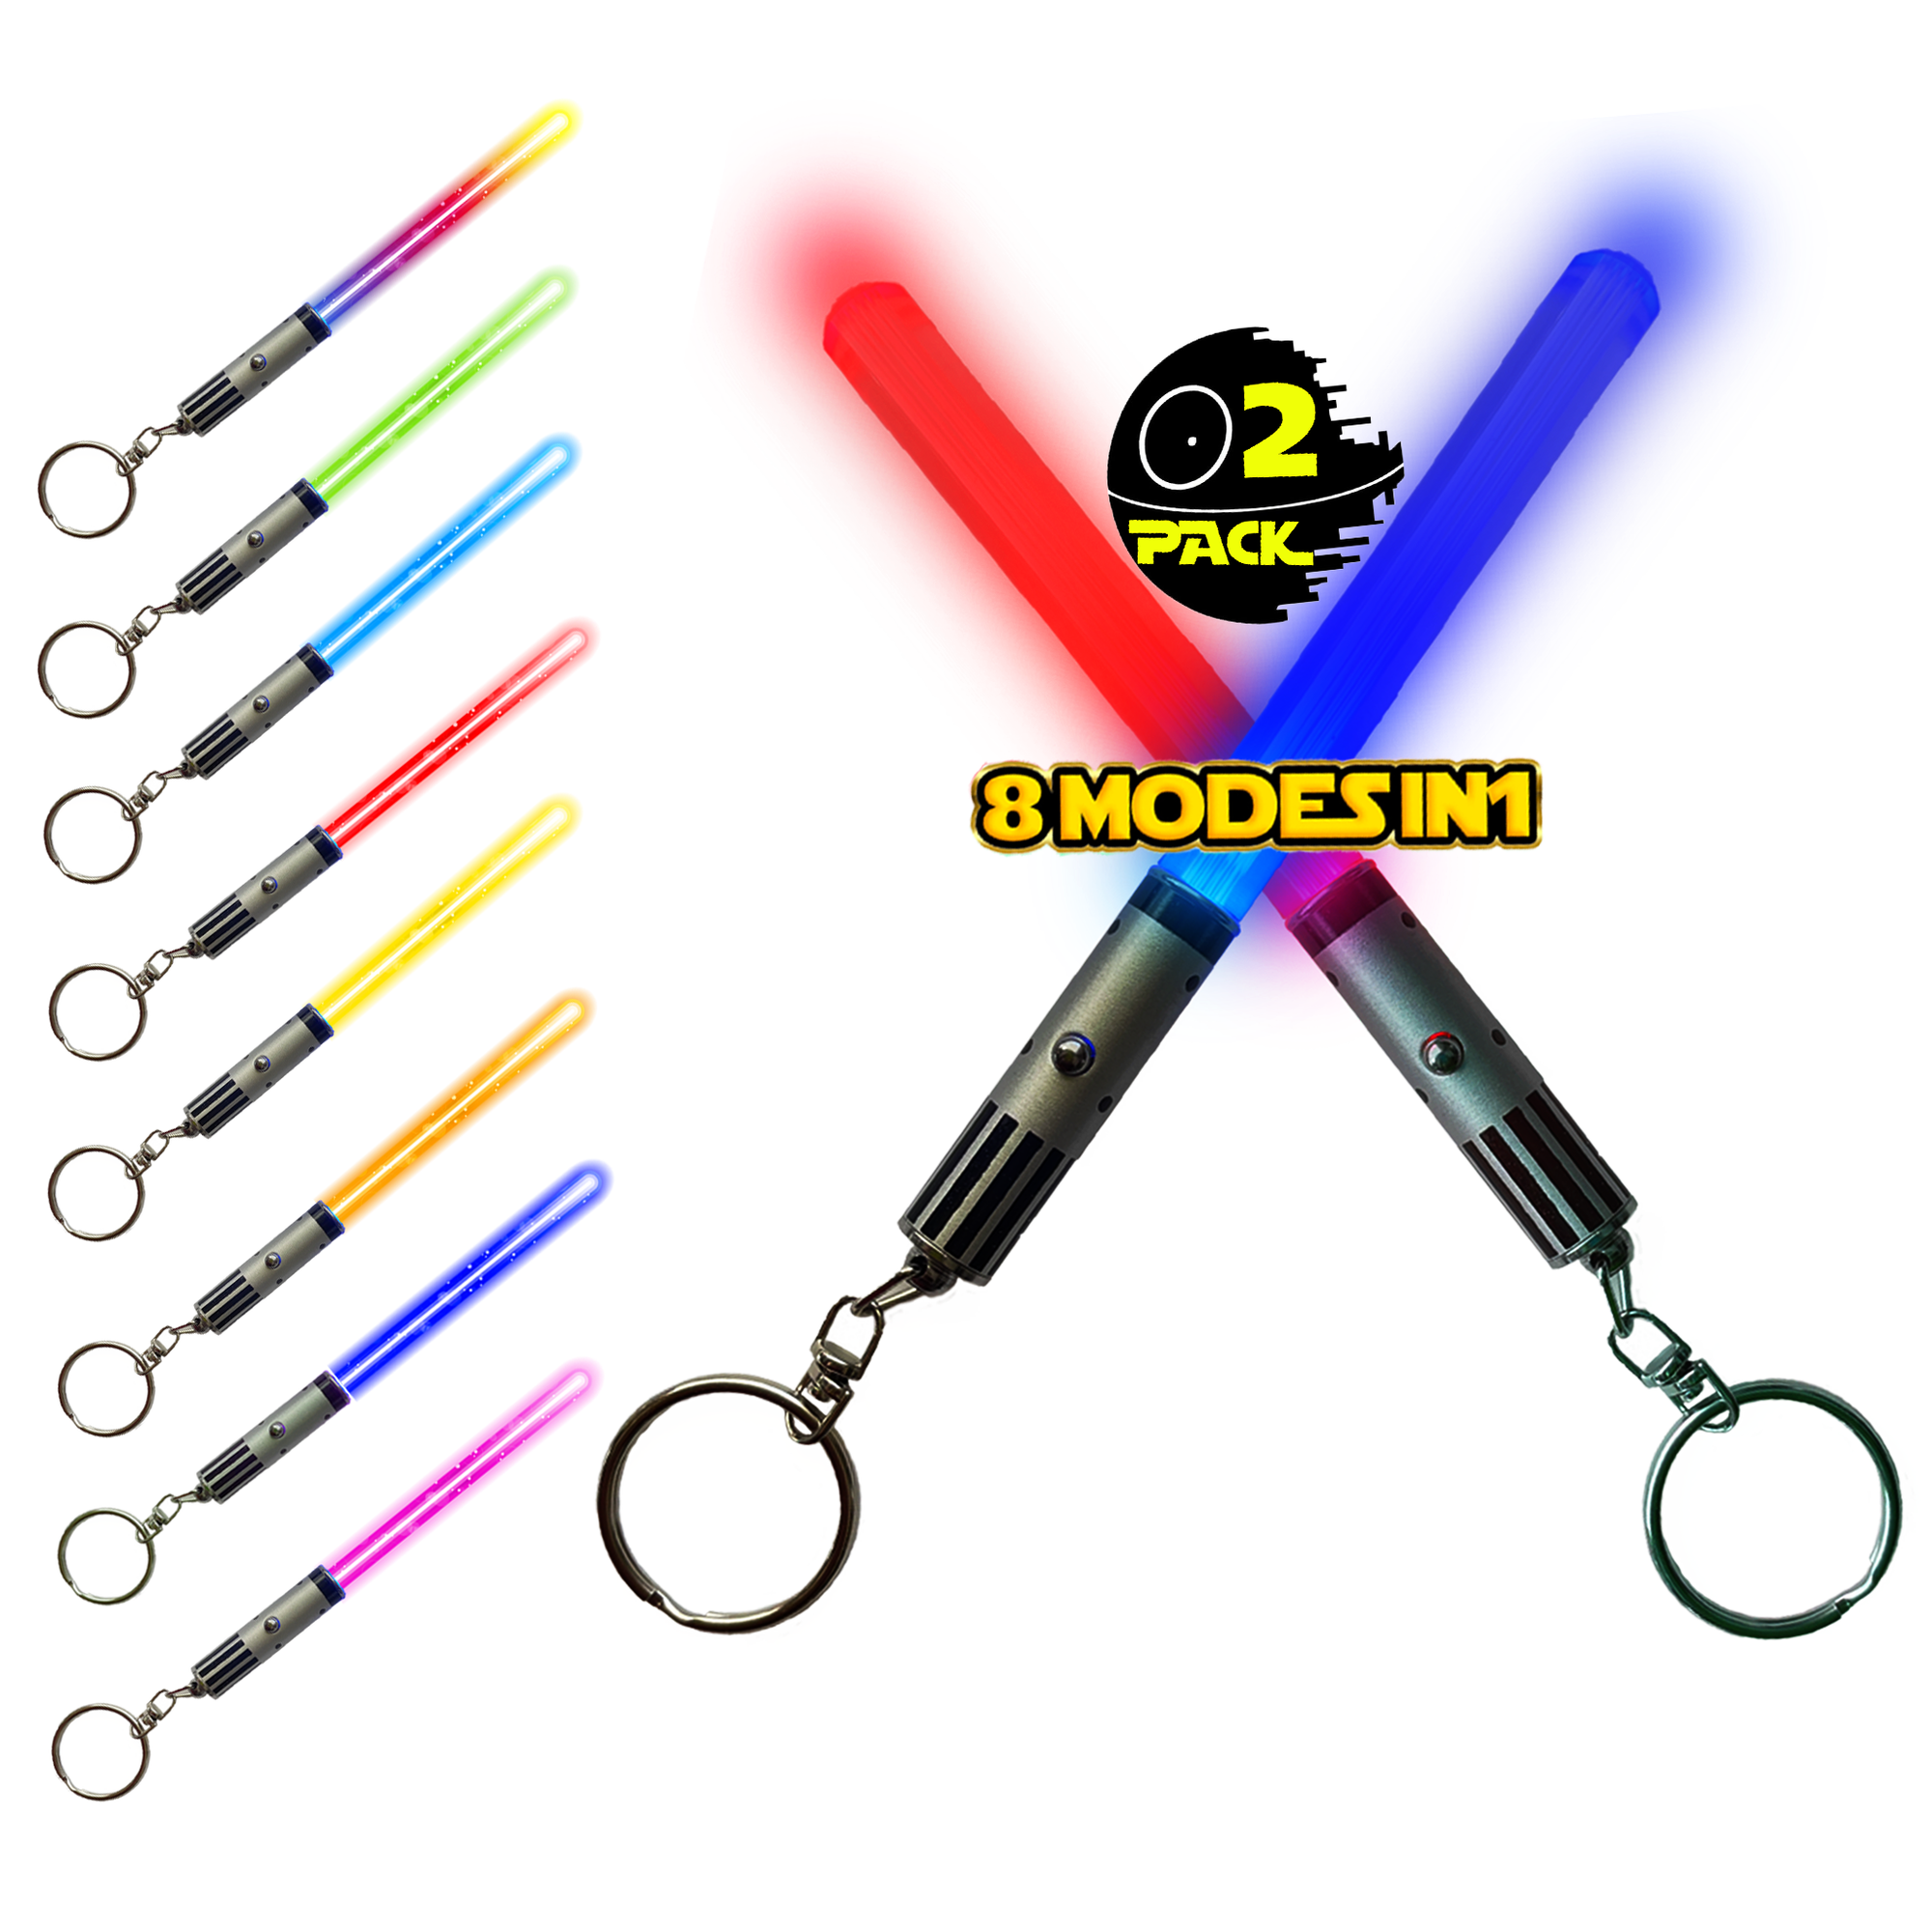 LIGHTSABER KEYCHAIN LIGHT UP LED STAR WARS Glowing Light Saber Key Chain Lightup Sabers 8 COLOR MODES: Green, Blue, Red, Baby Blue, Pink, Yellow, White, Rainbow